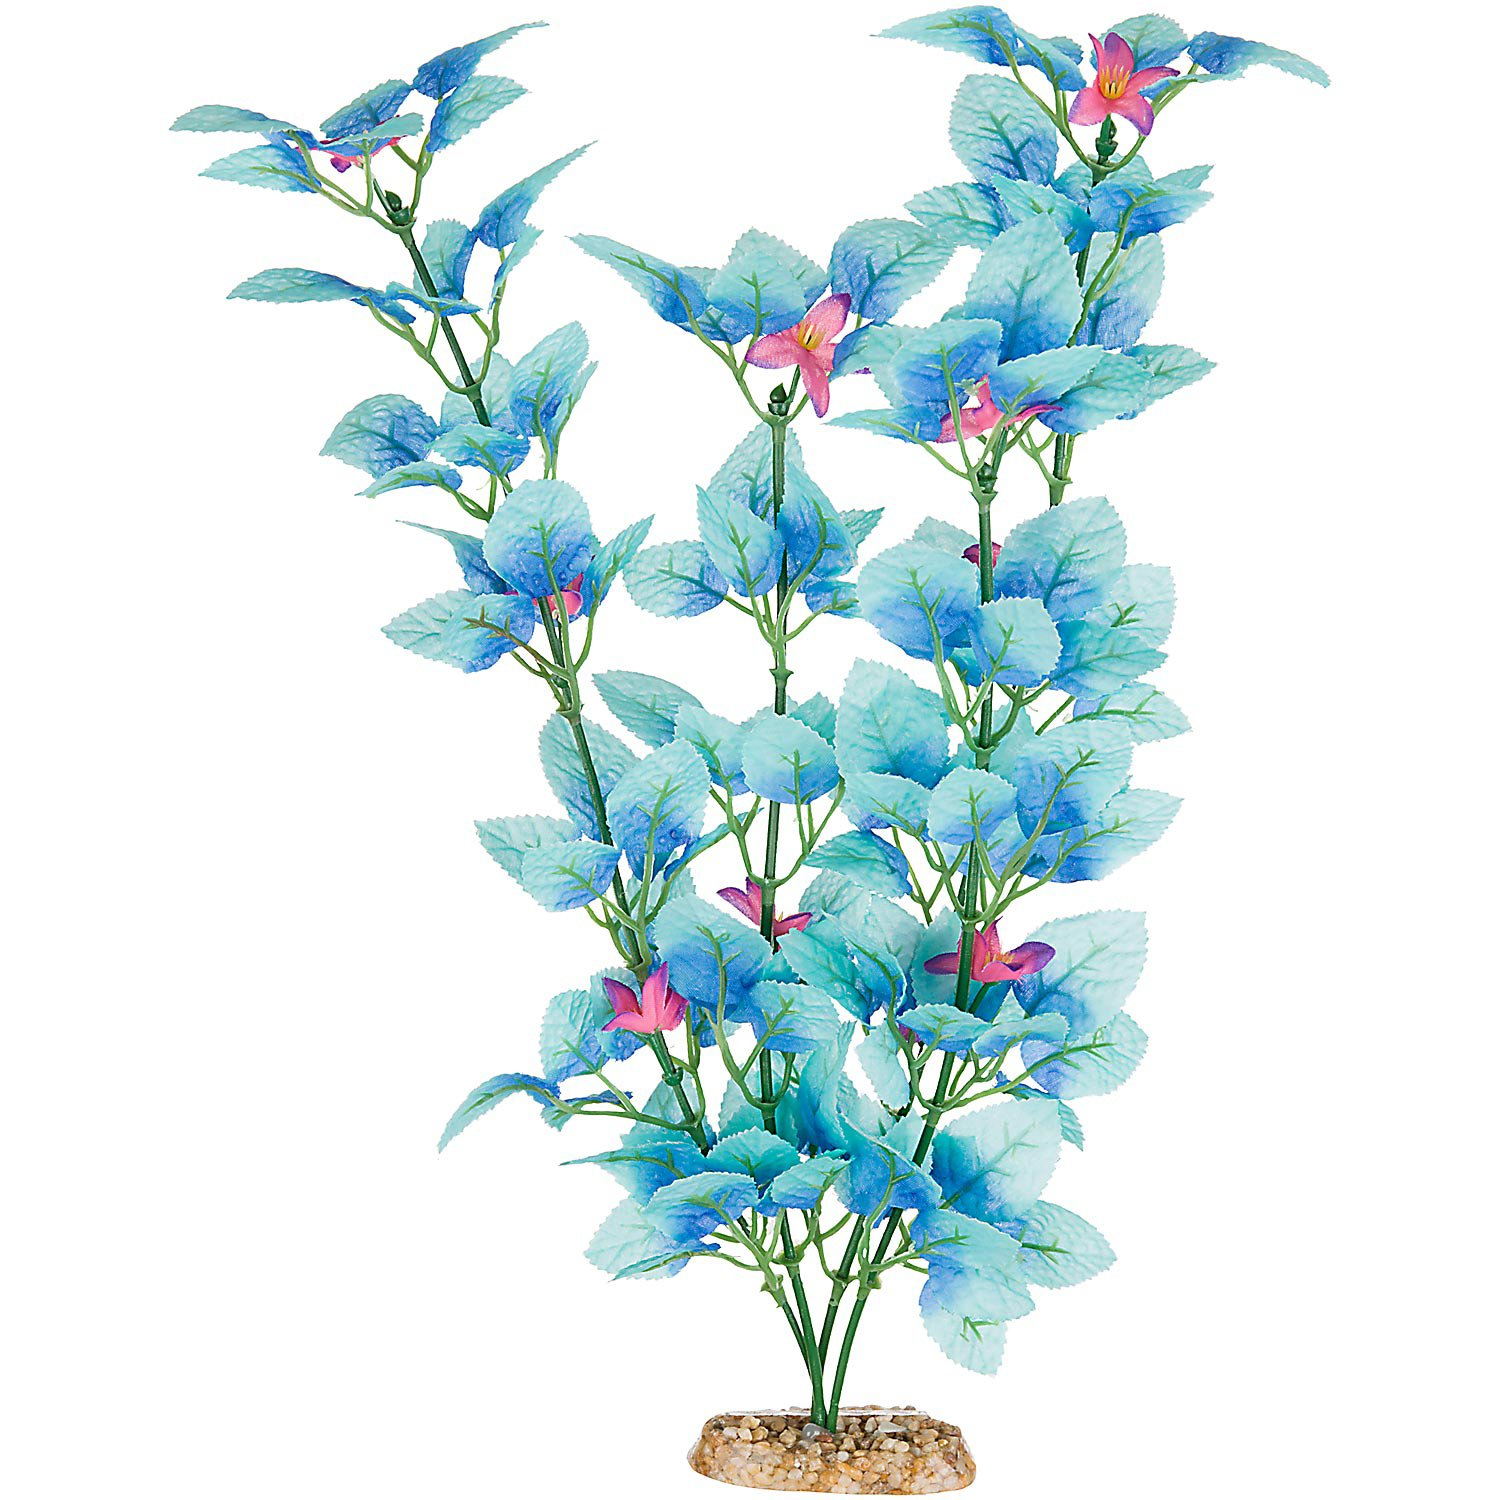 Imagitarium Blue Fiesta Silk Aquarium Plant Petco